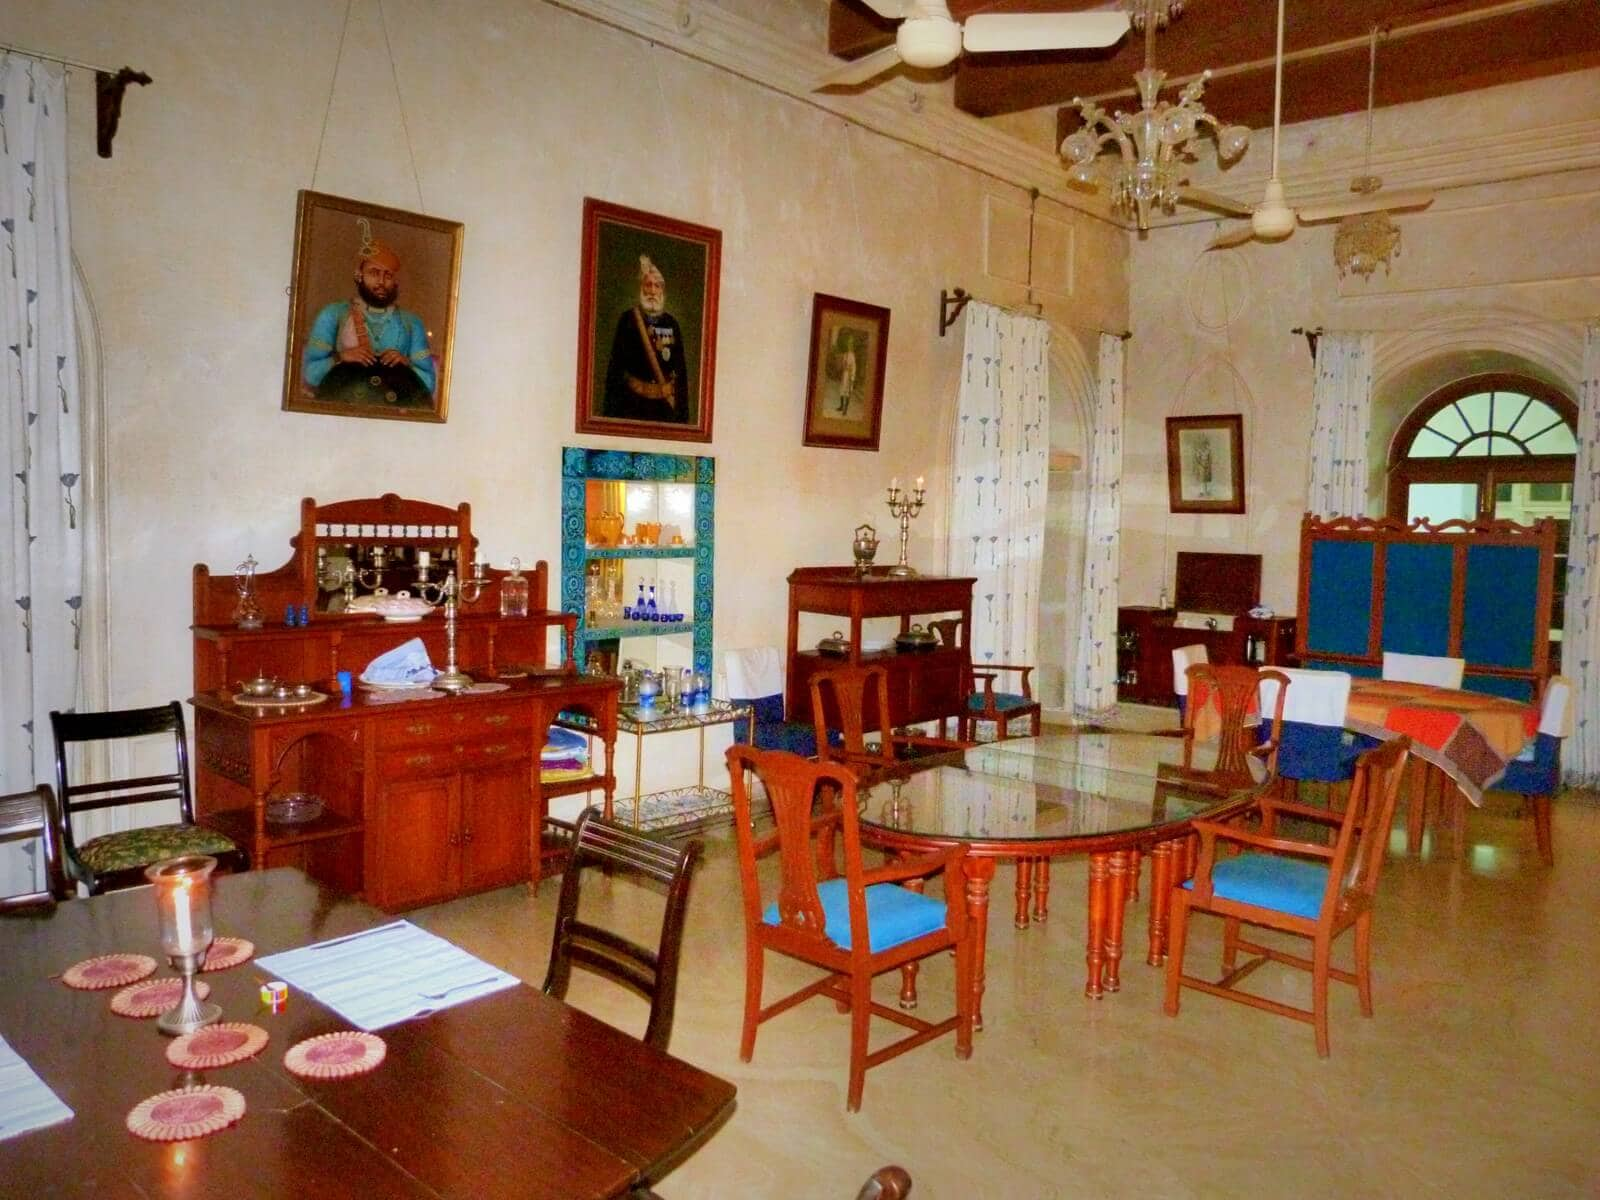 Dining room at Shahpura Bagh